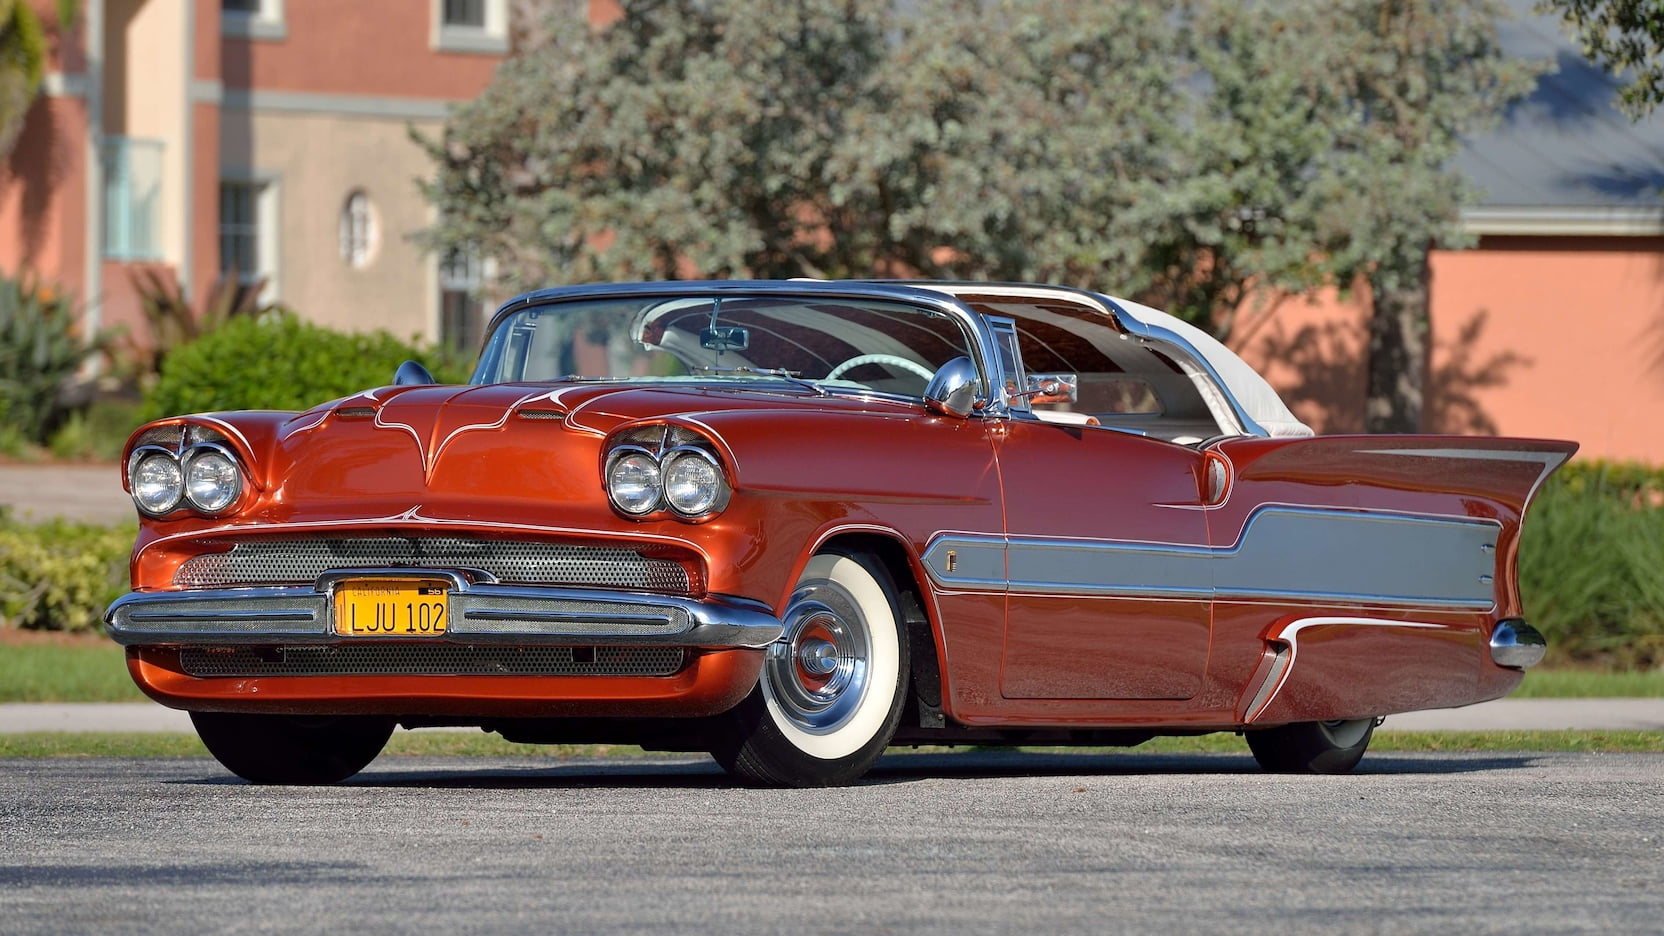 This Barris-built 1955 Chevy Aztec is over-the-top absurd—and up for grabs